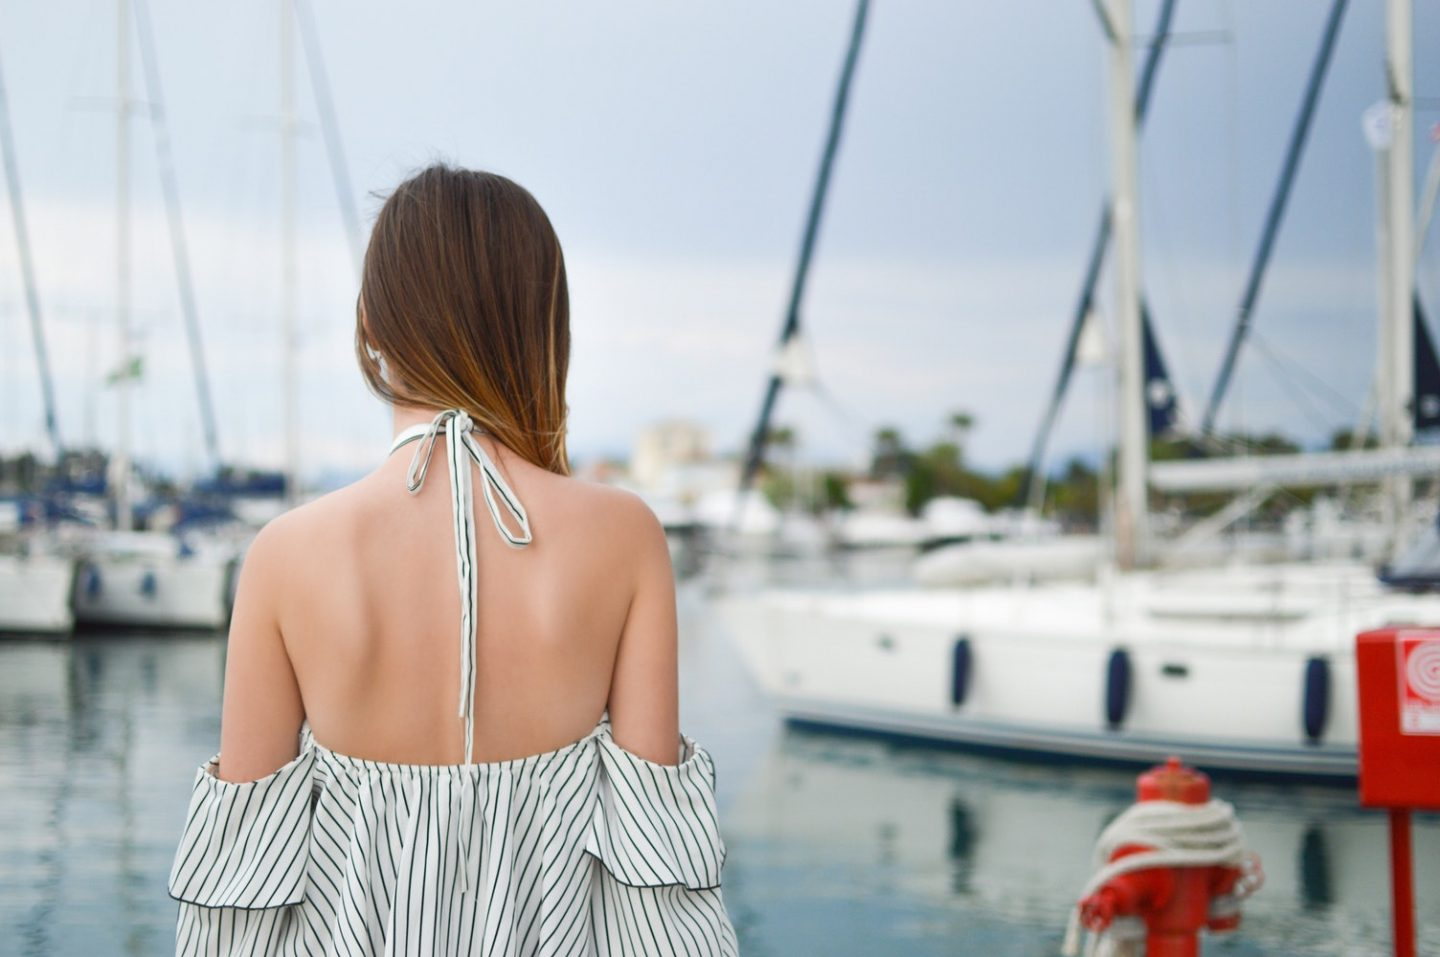 Catamaran Considerations – What to Look for in a Boat